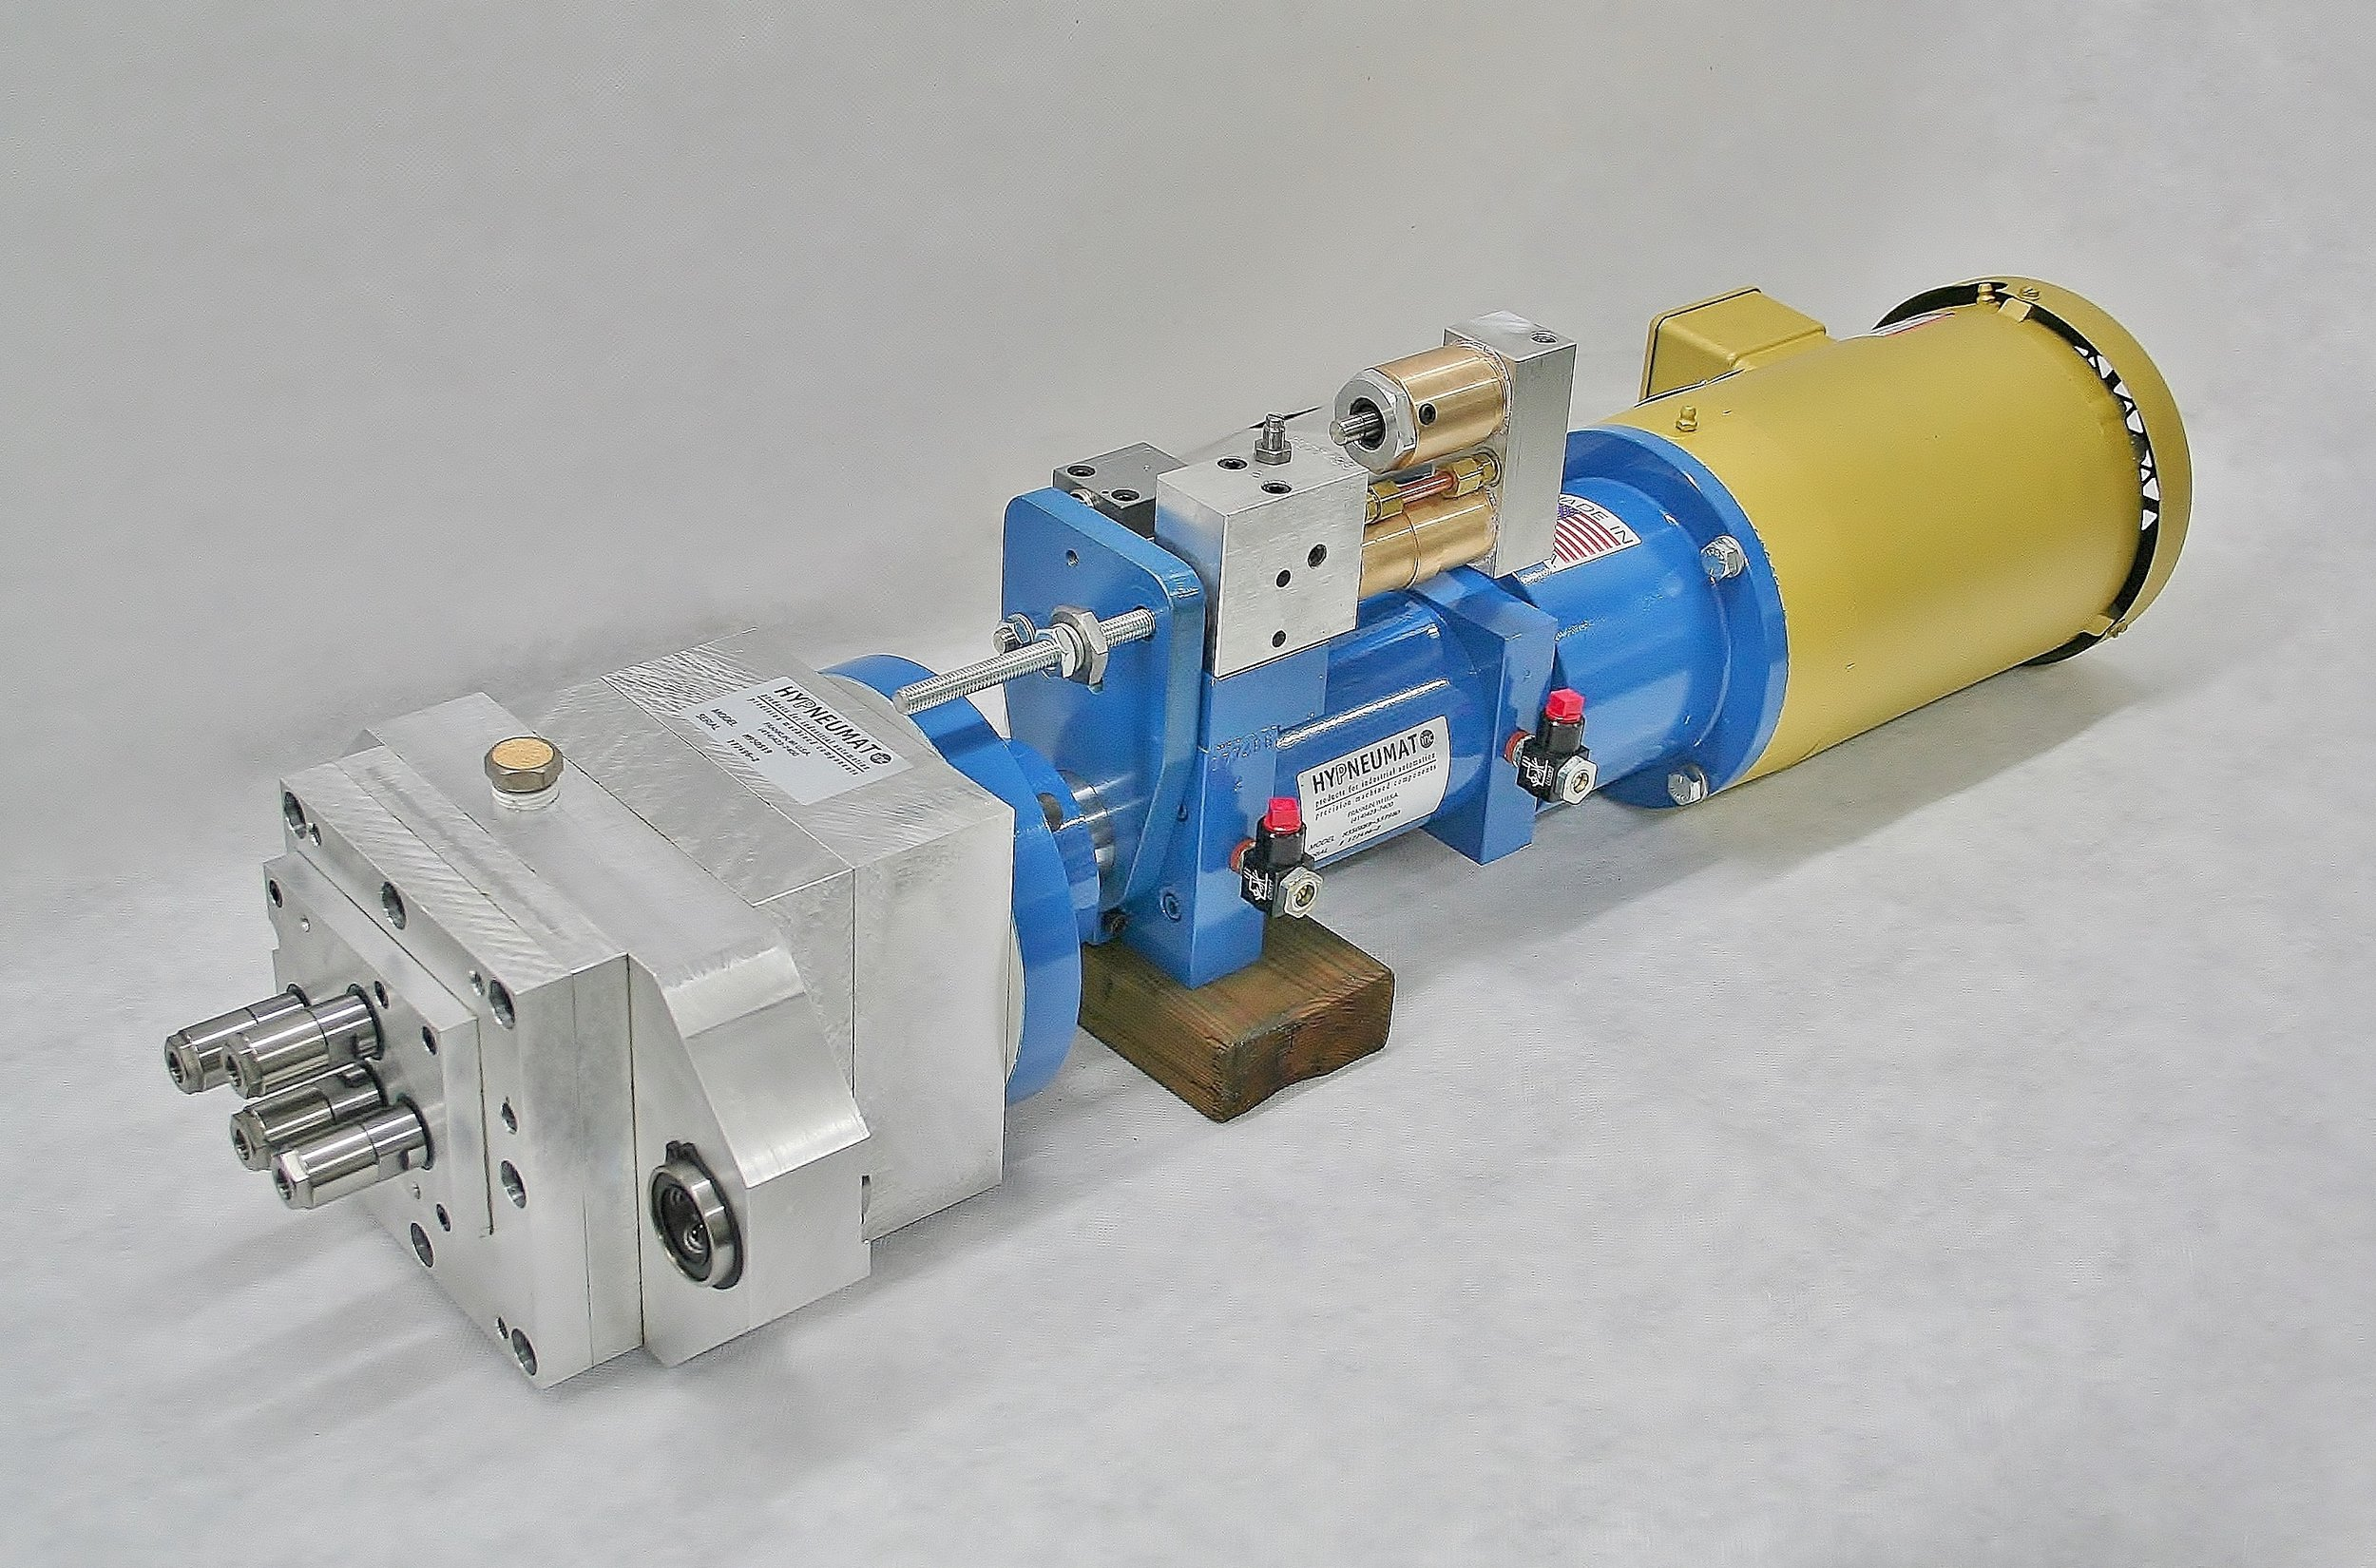 Heavy-Duty 4-Spindle Head with ER Collet Spindles, Guide Rod Bushings and FLange Adaptation to Automatic Drilling Unit.